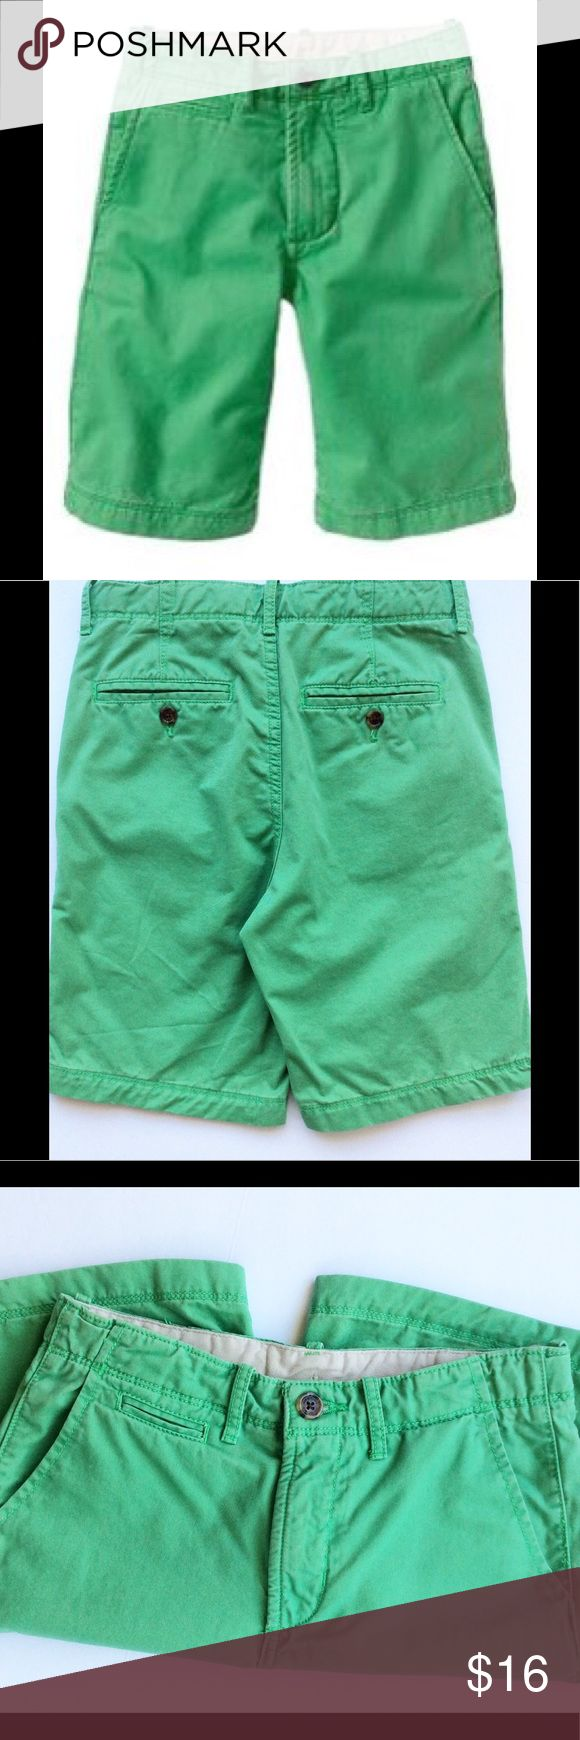 "Gap Kids Boys Walking Shorts Gap kids boys walking shorts in a seafoam green. Size 14 regular, measures approx., waist 28"", inseam 9"". Features two front pockets, two back pockets, one front coin pocket. 100% cotton. Gap Kids Bottoms Shorts"